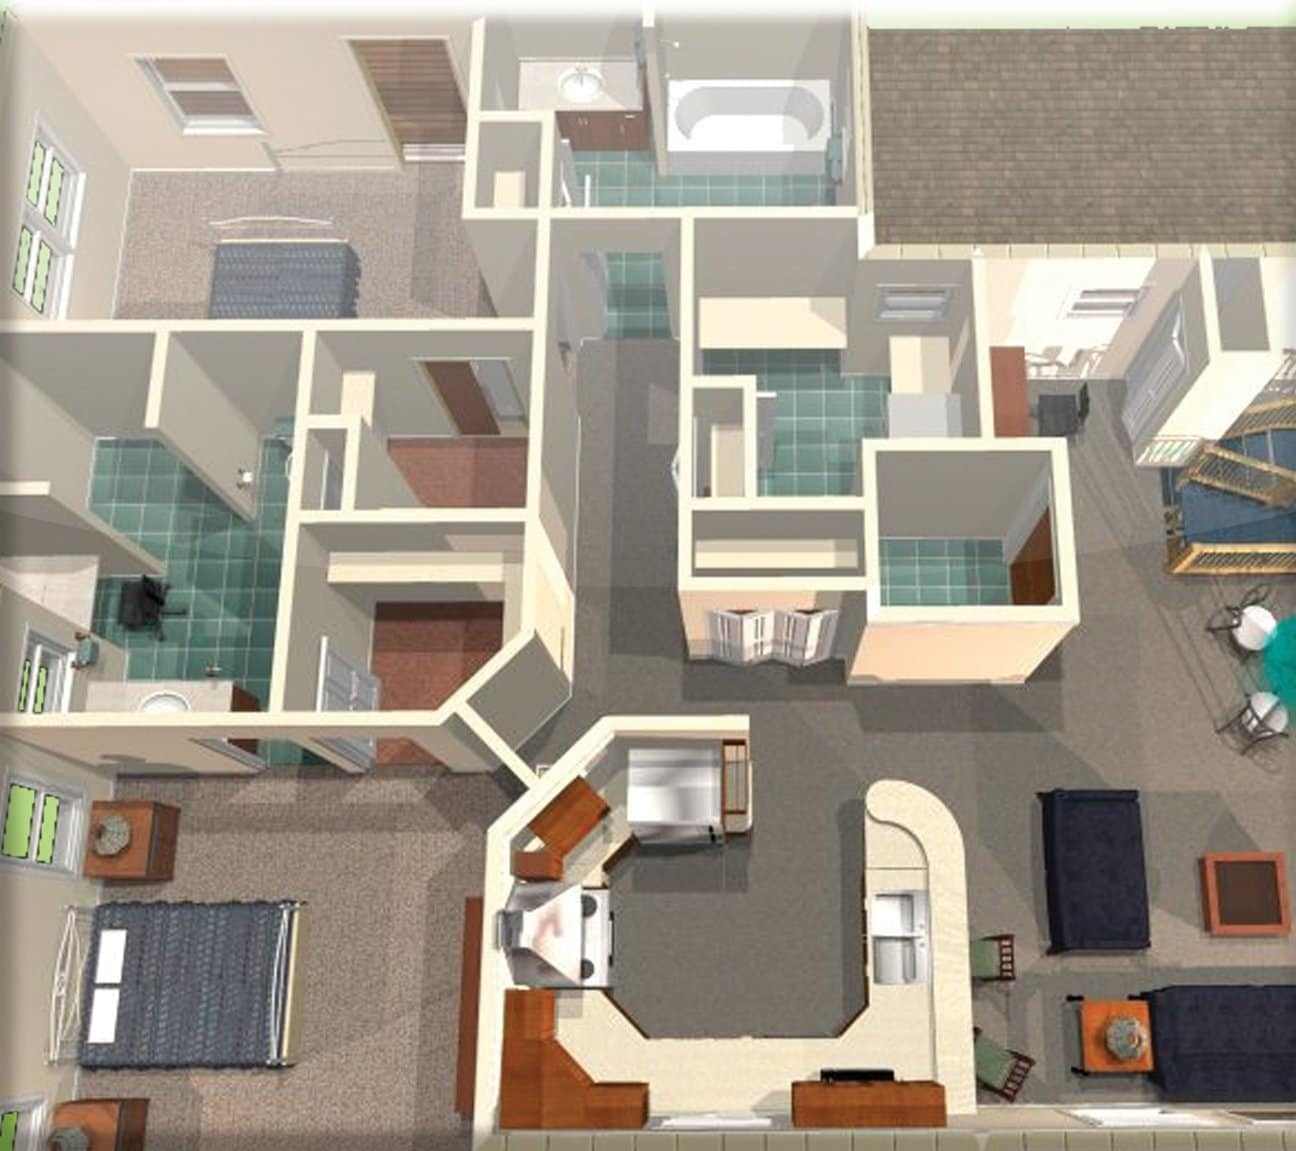 Free Floor Plan Windows on home design art, home design windows, home design graphics, home design samples, home design business, home design tools, home design forum, home design online, home design blog, home design games, home design for mac, home design house, home design photography, food free download, home design facebook, house free download, home design themes, home design ipad, home design software free, home design youtube,